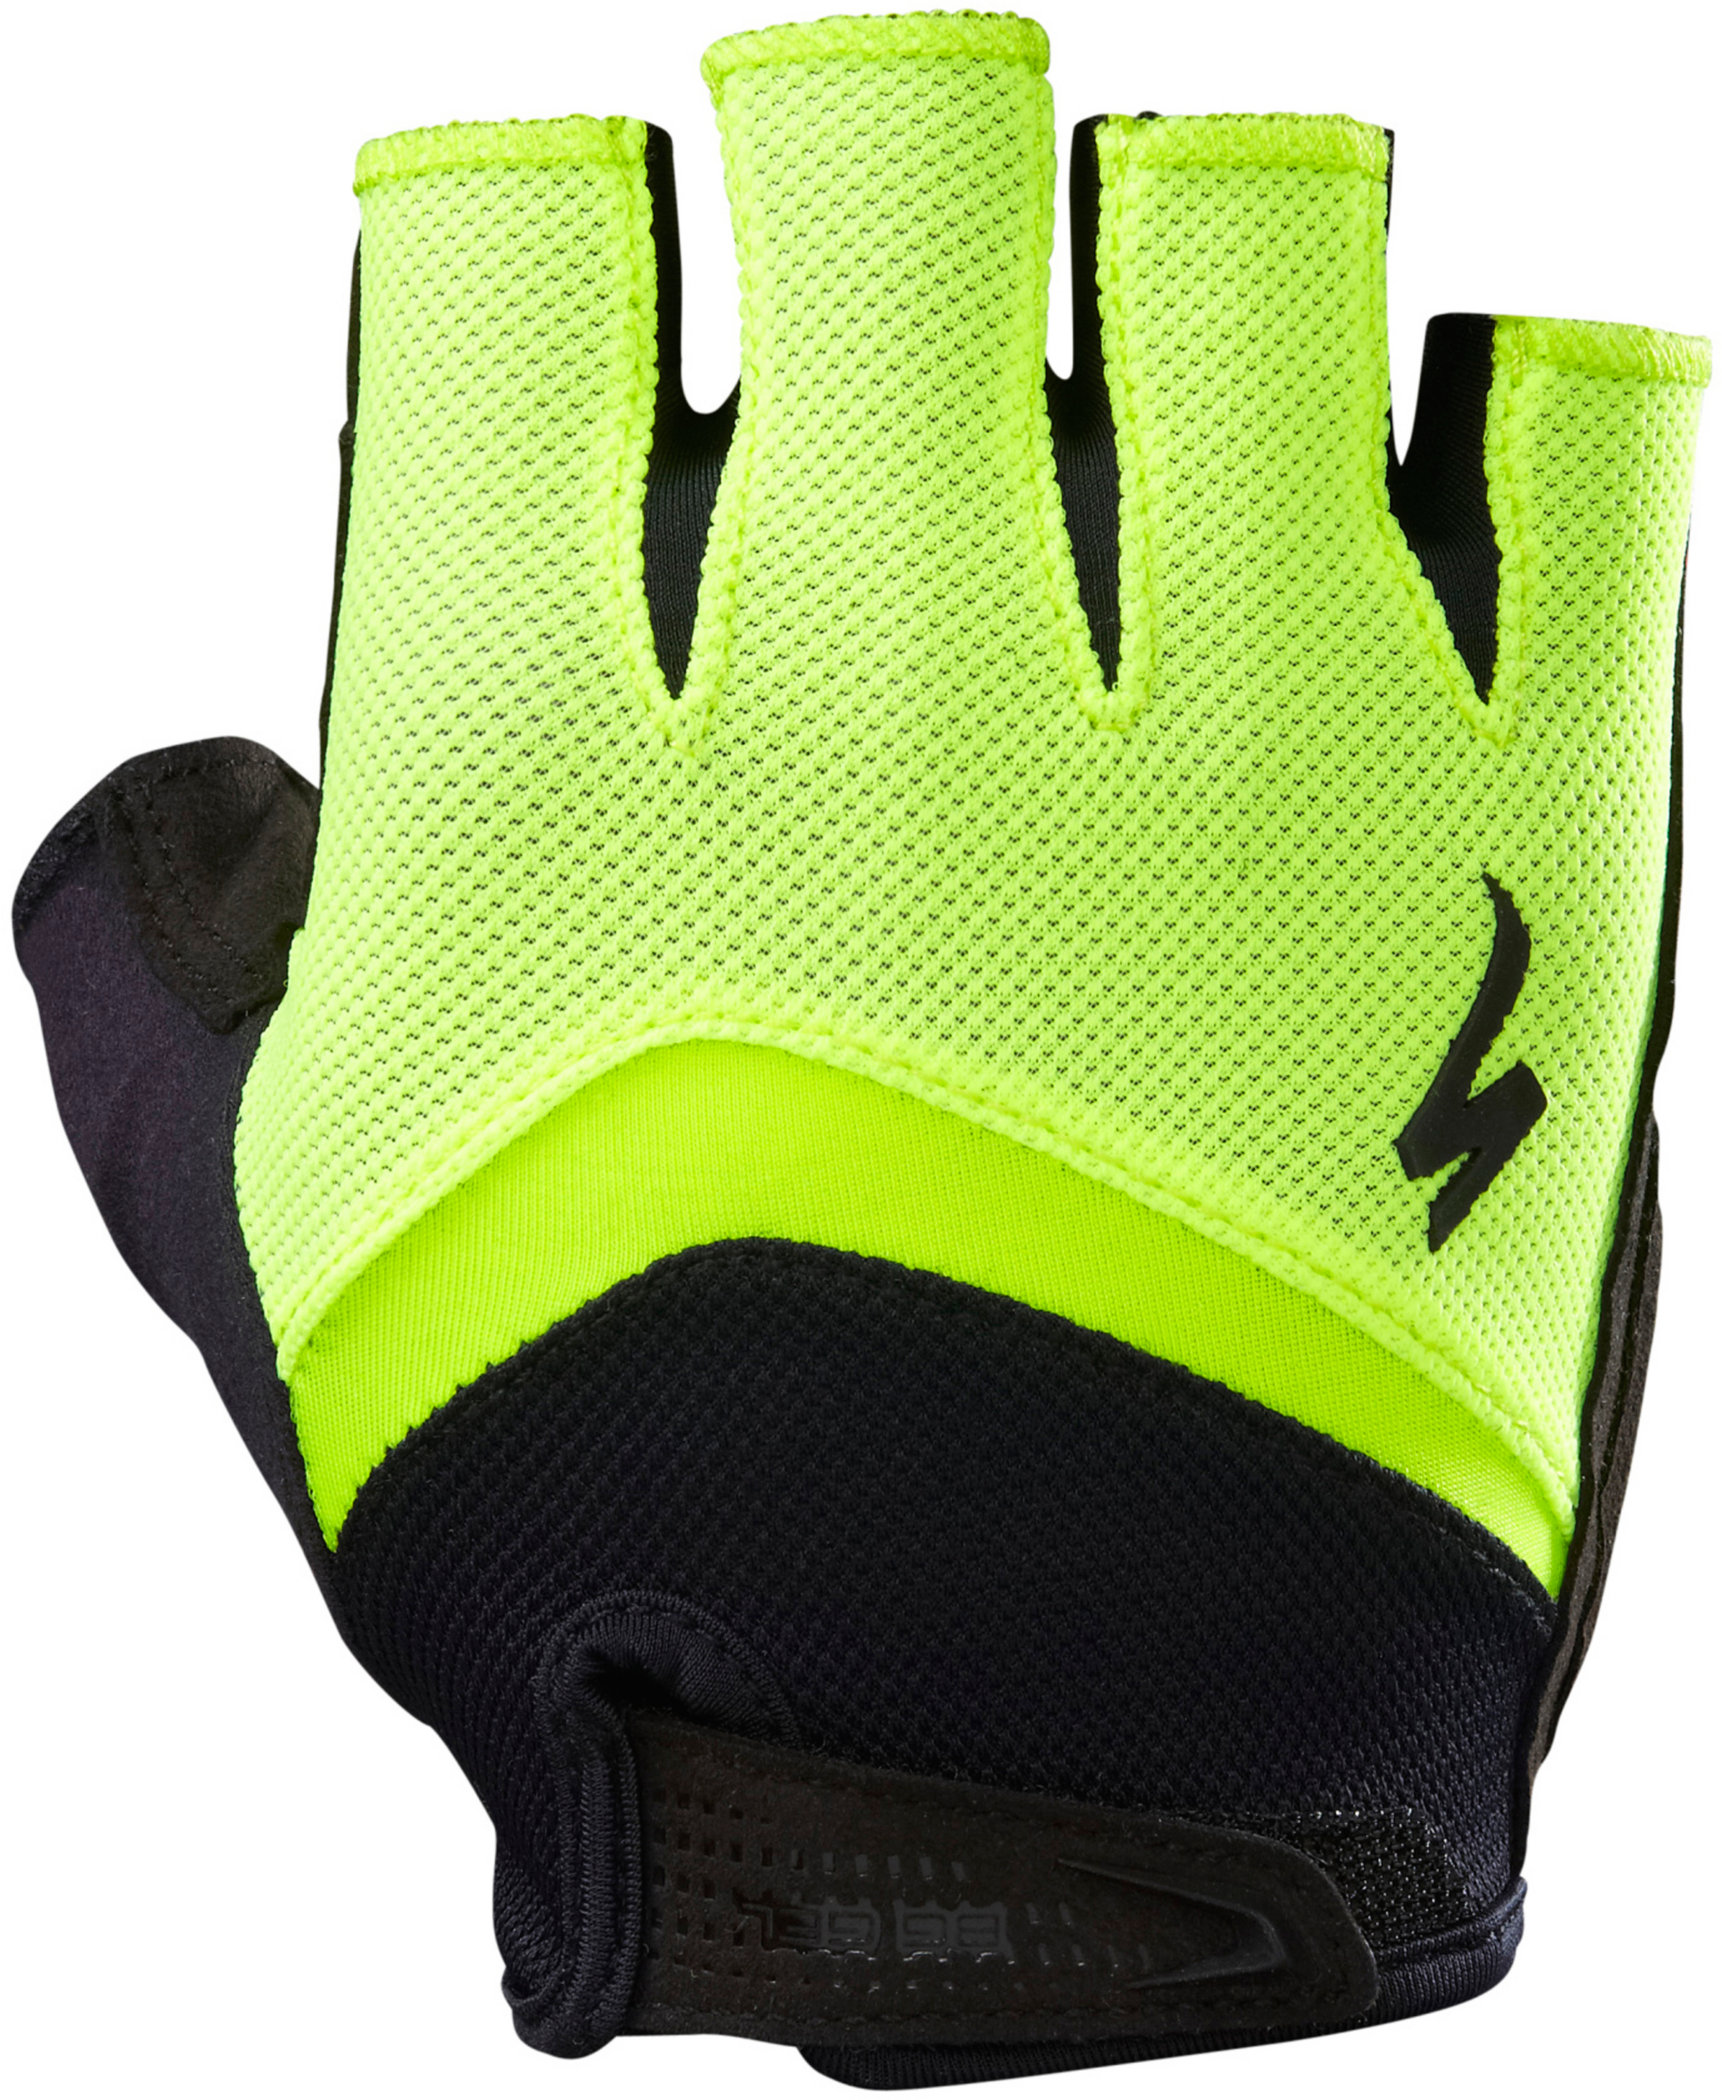 e2ff63b694f Body Geometry Gel Gloves